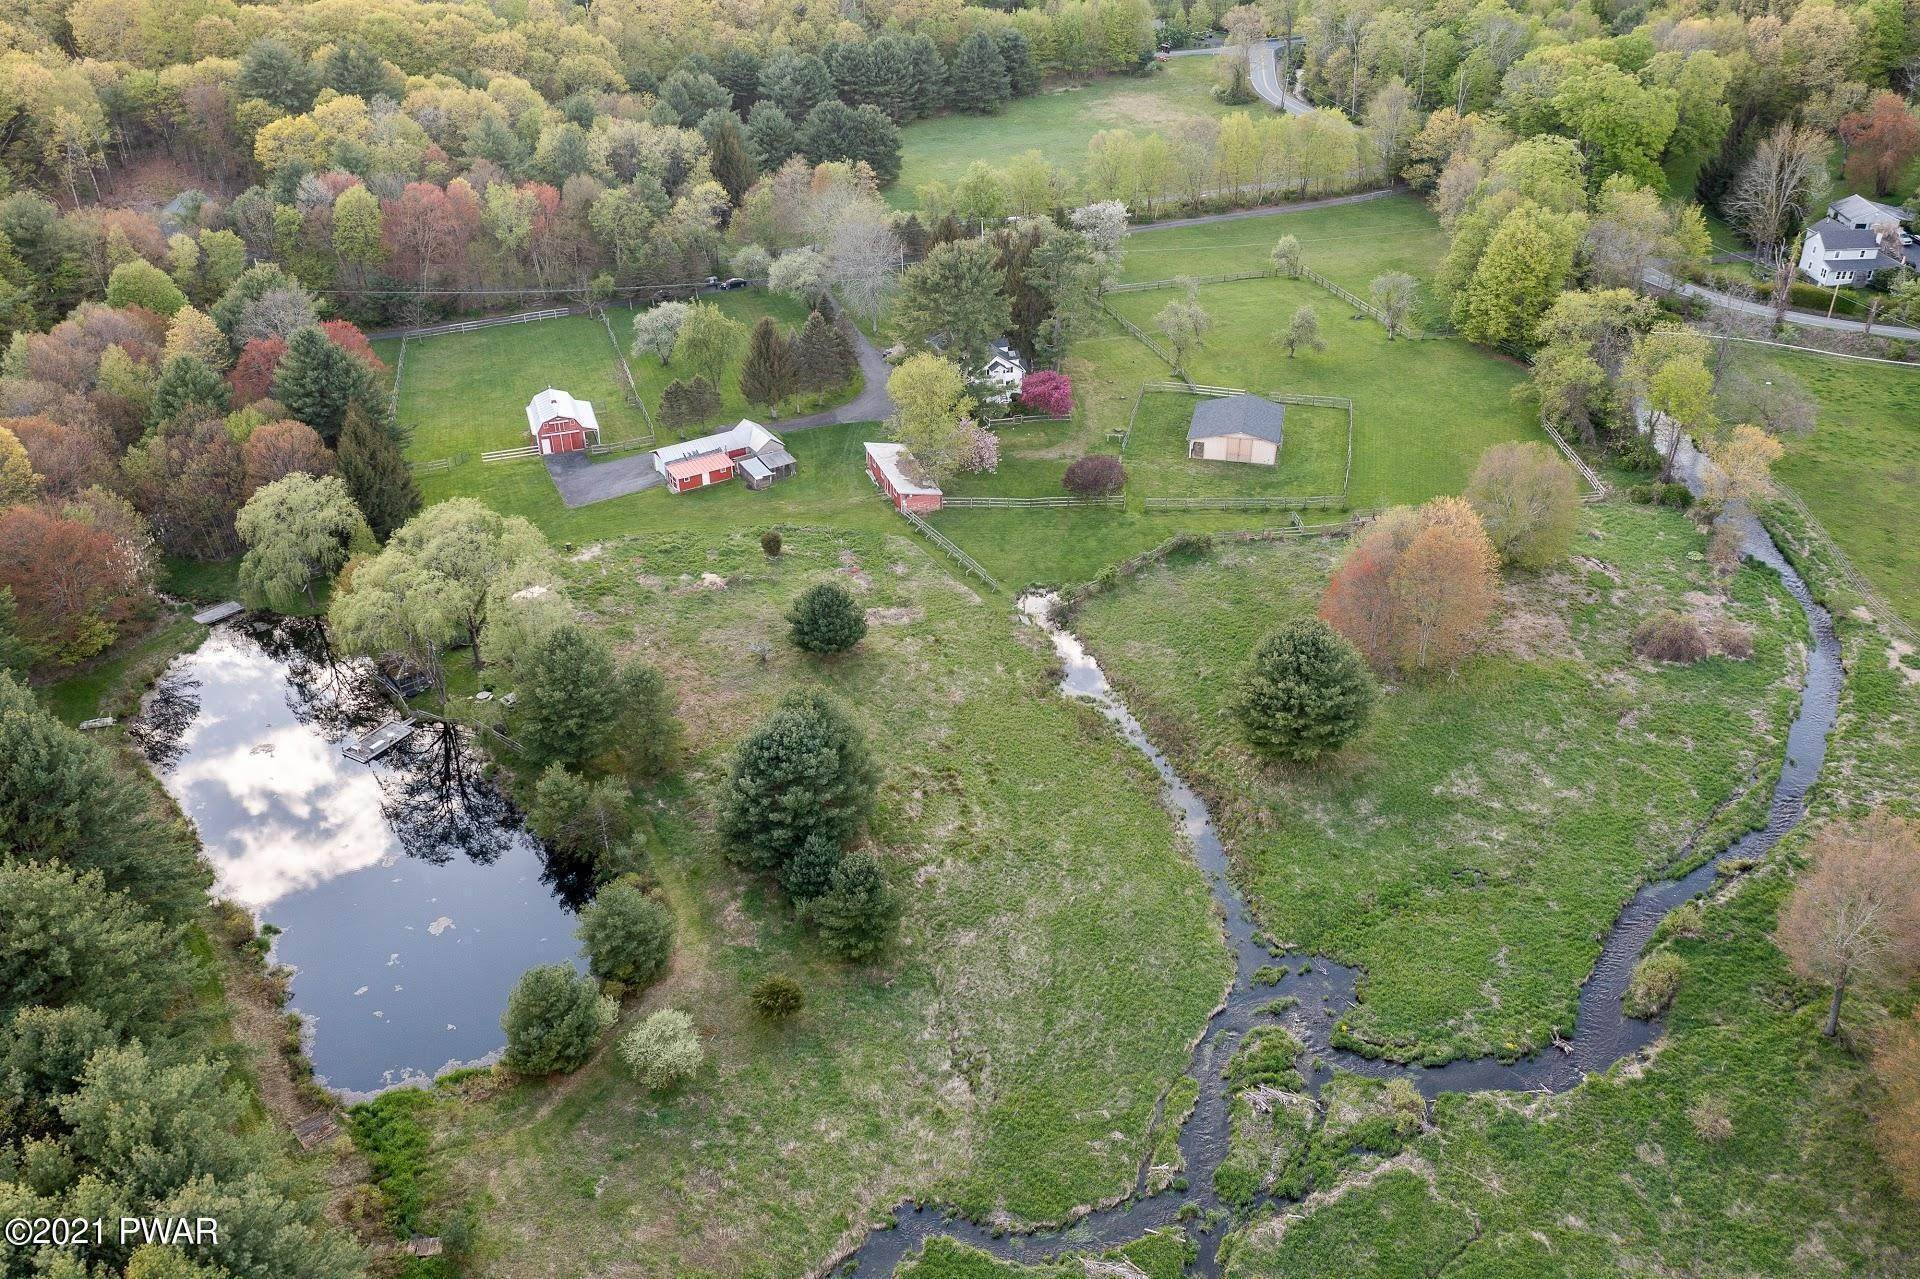 Property for Sale at 107 Chestnut Ridge Rd Dingmans Ferry, Pennsylvania 18328 United States